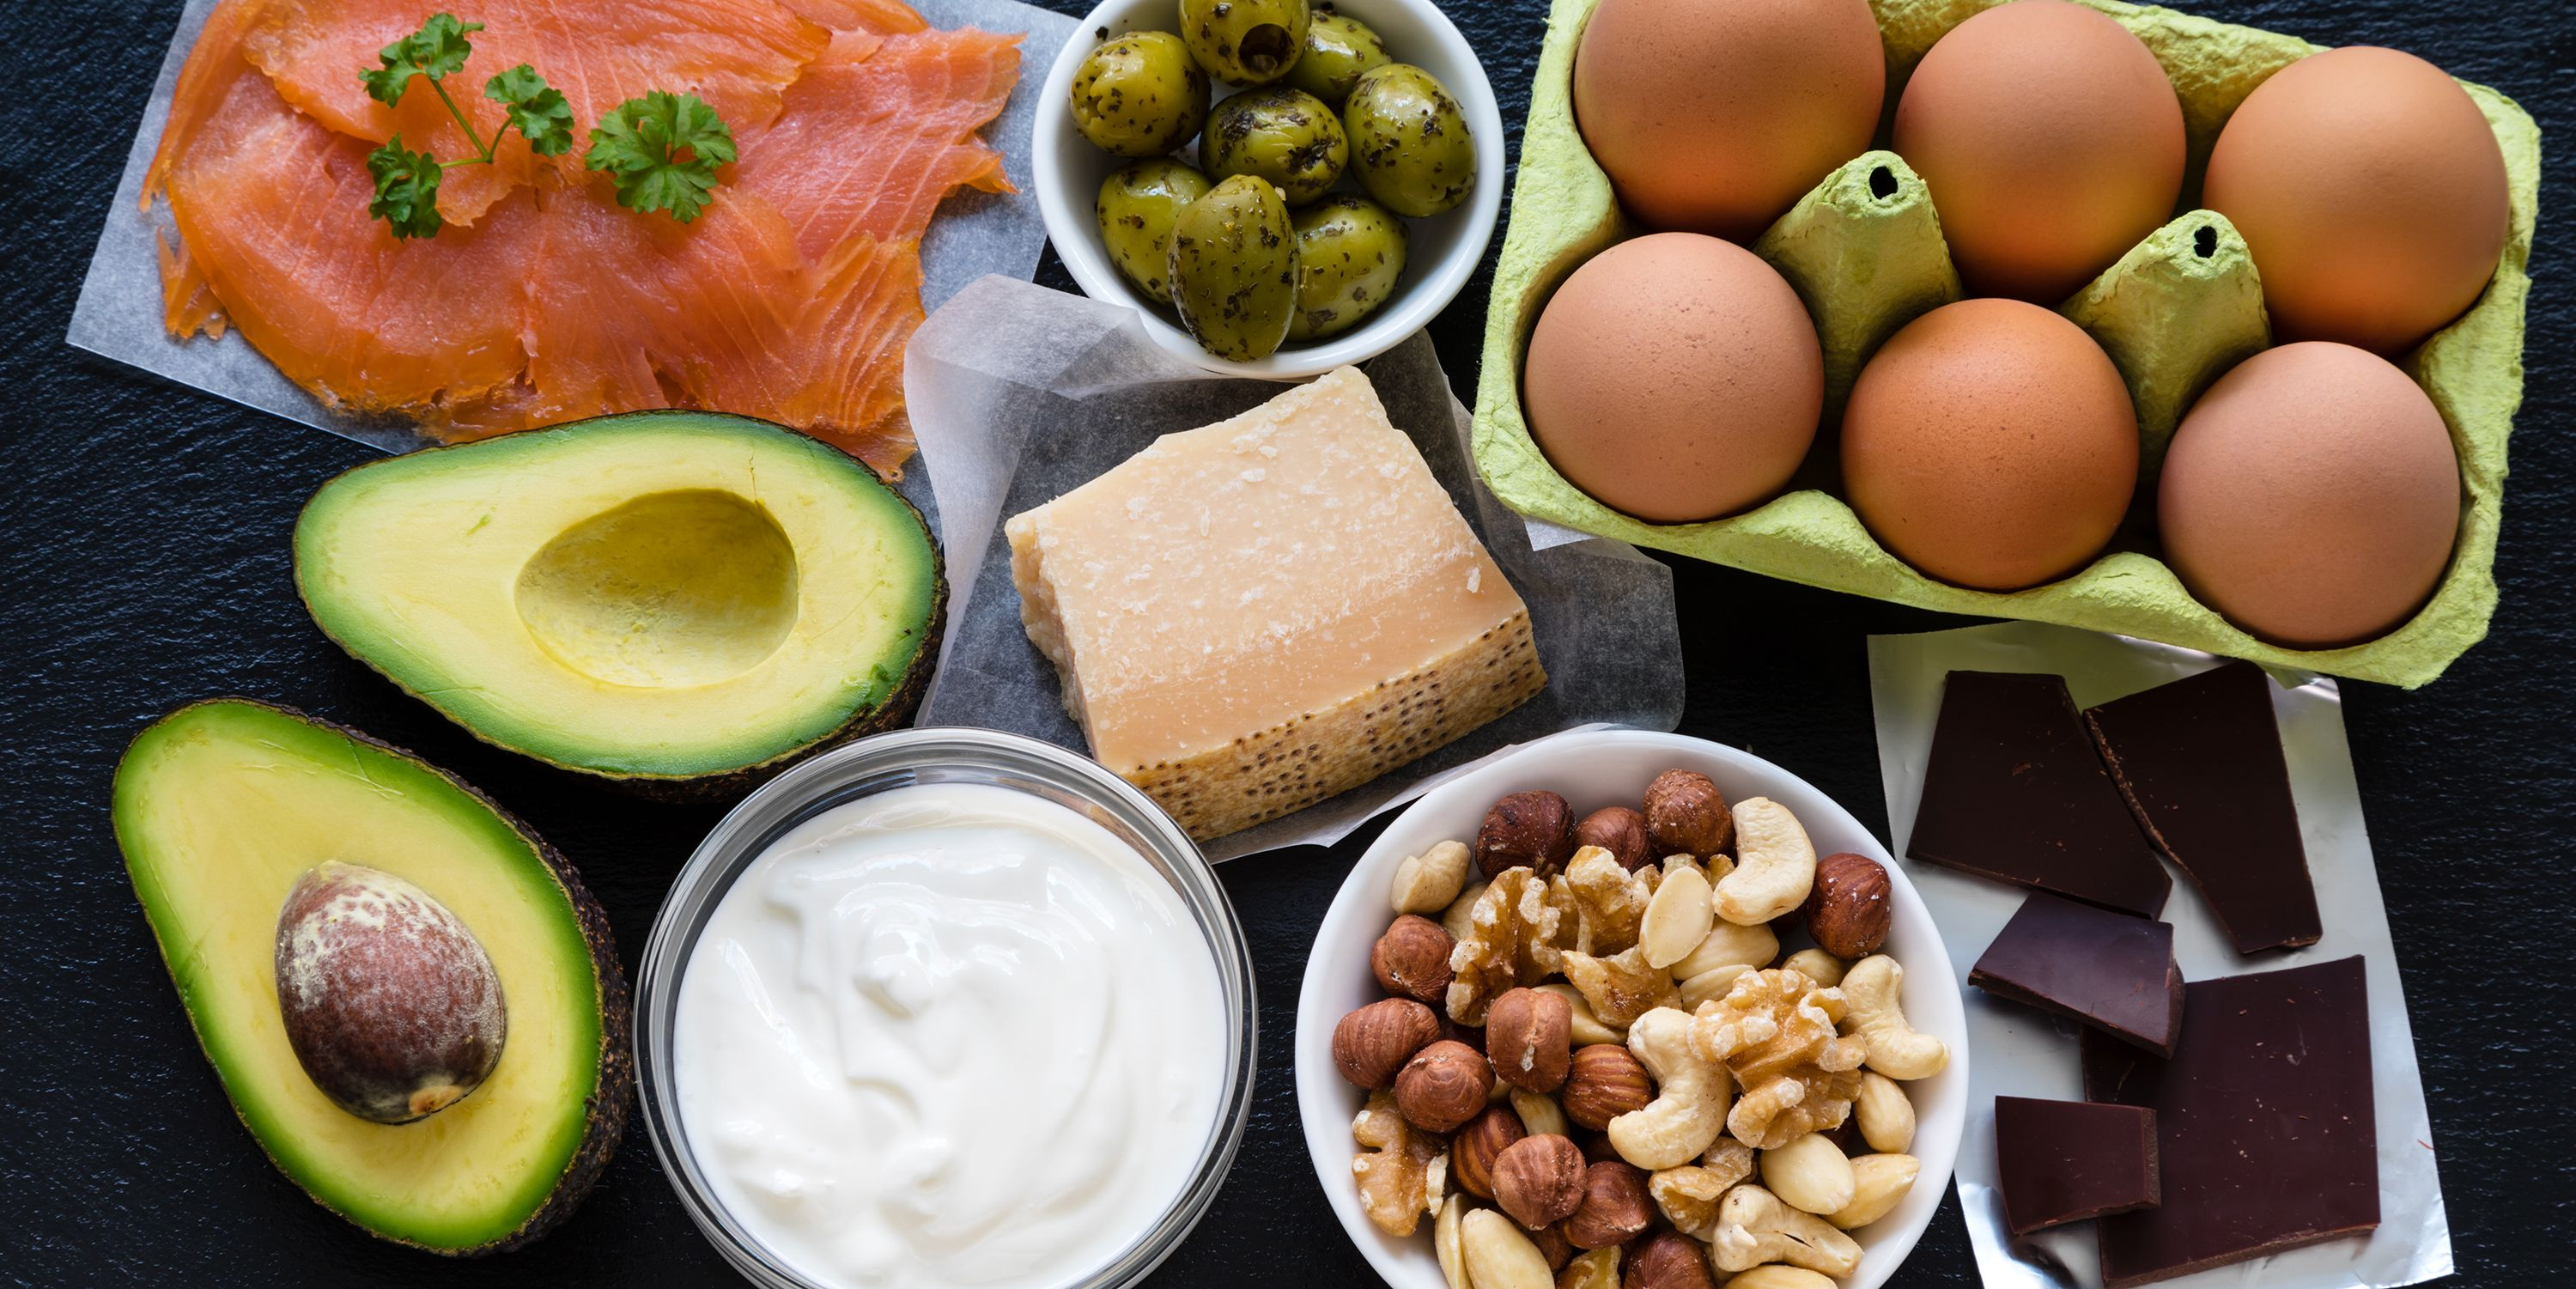 What You Can And Can T Eat On A Keto Diet